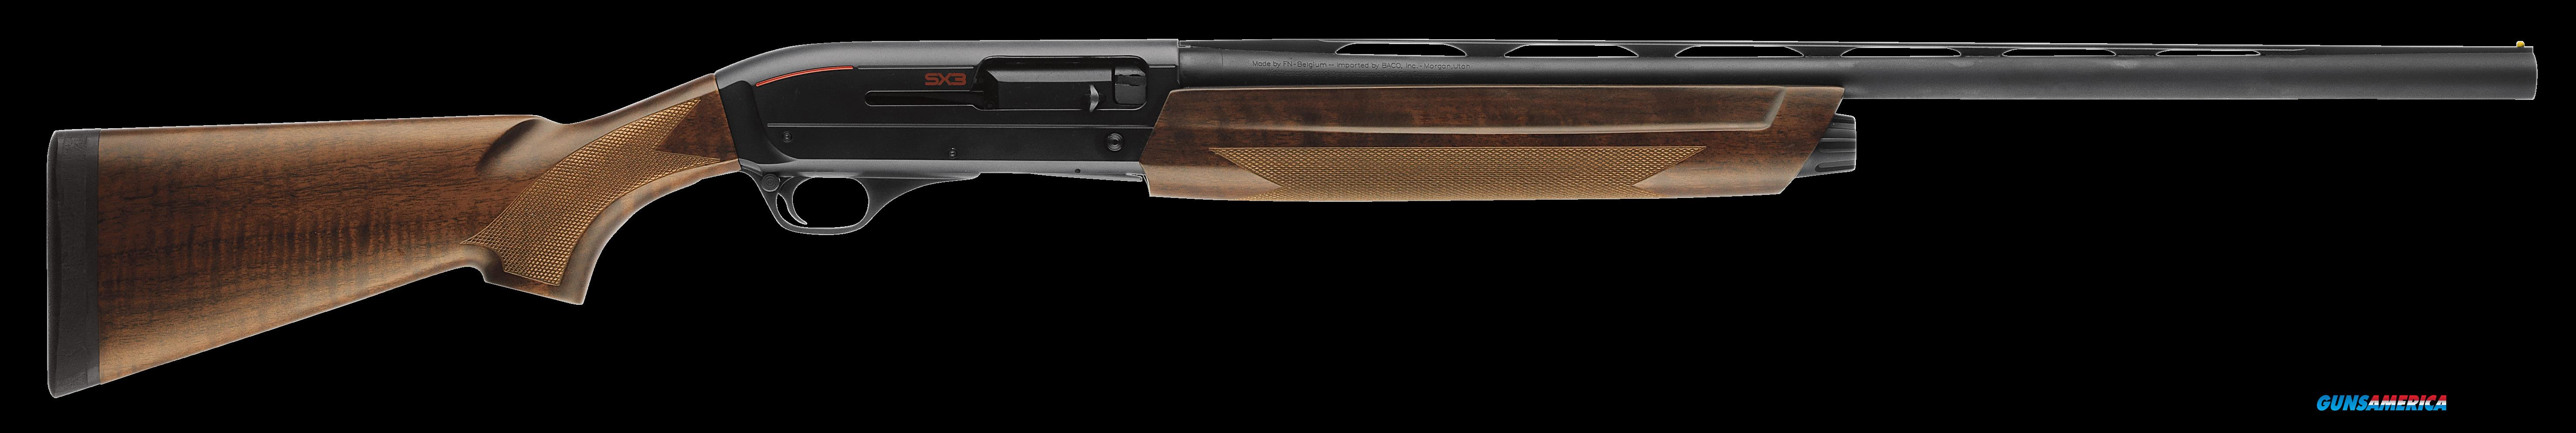 "Winchester Guns 511172394 SX3 Composite Sporting Carbon Fiber Semi-Automatic 12 Gauge 32"" 2.75"" 4+1  Guns > Shotguns > W Misc Shotguns"